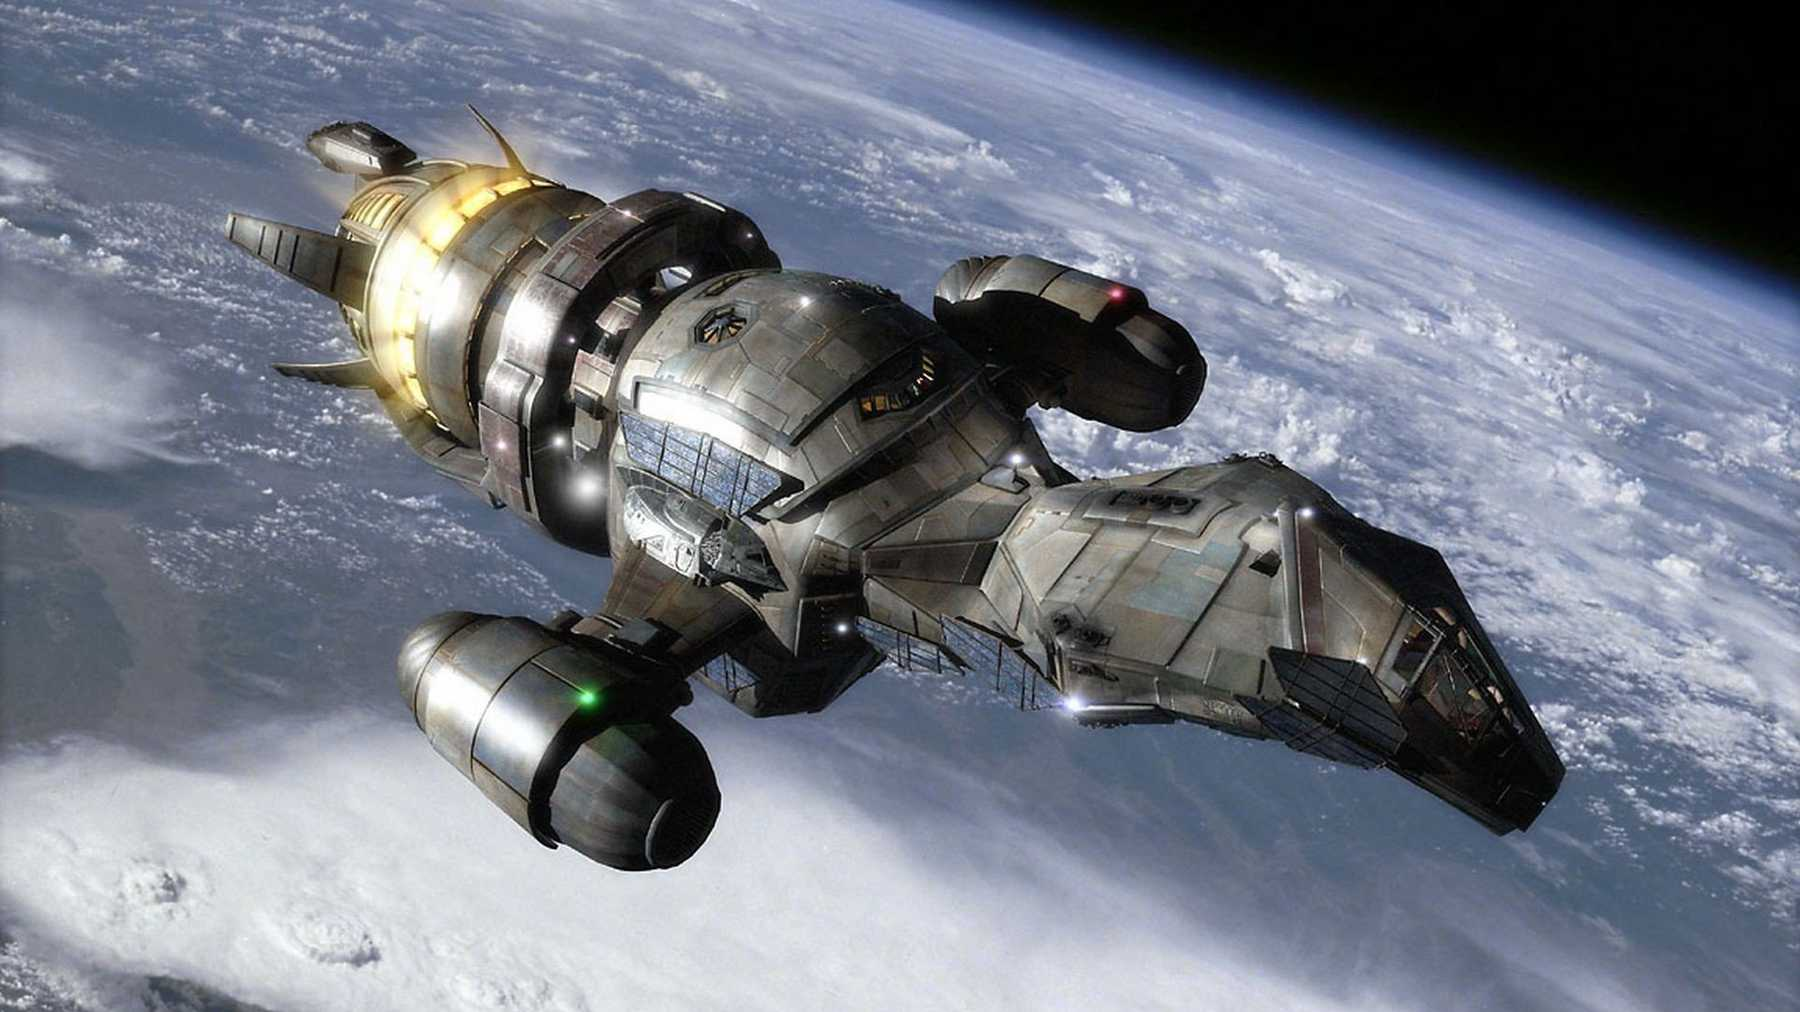 The spaceship Serenity in flight in Serenity (2005)